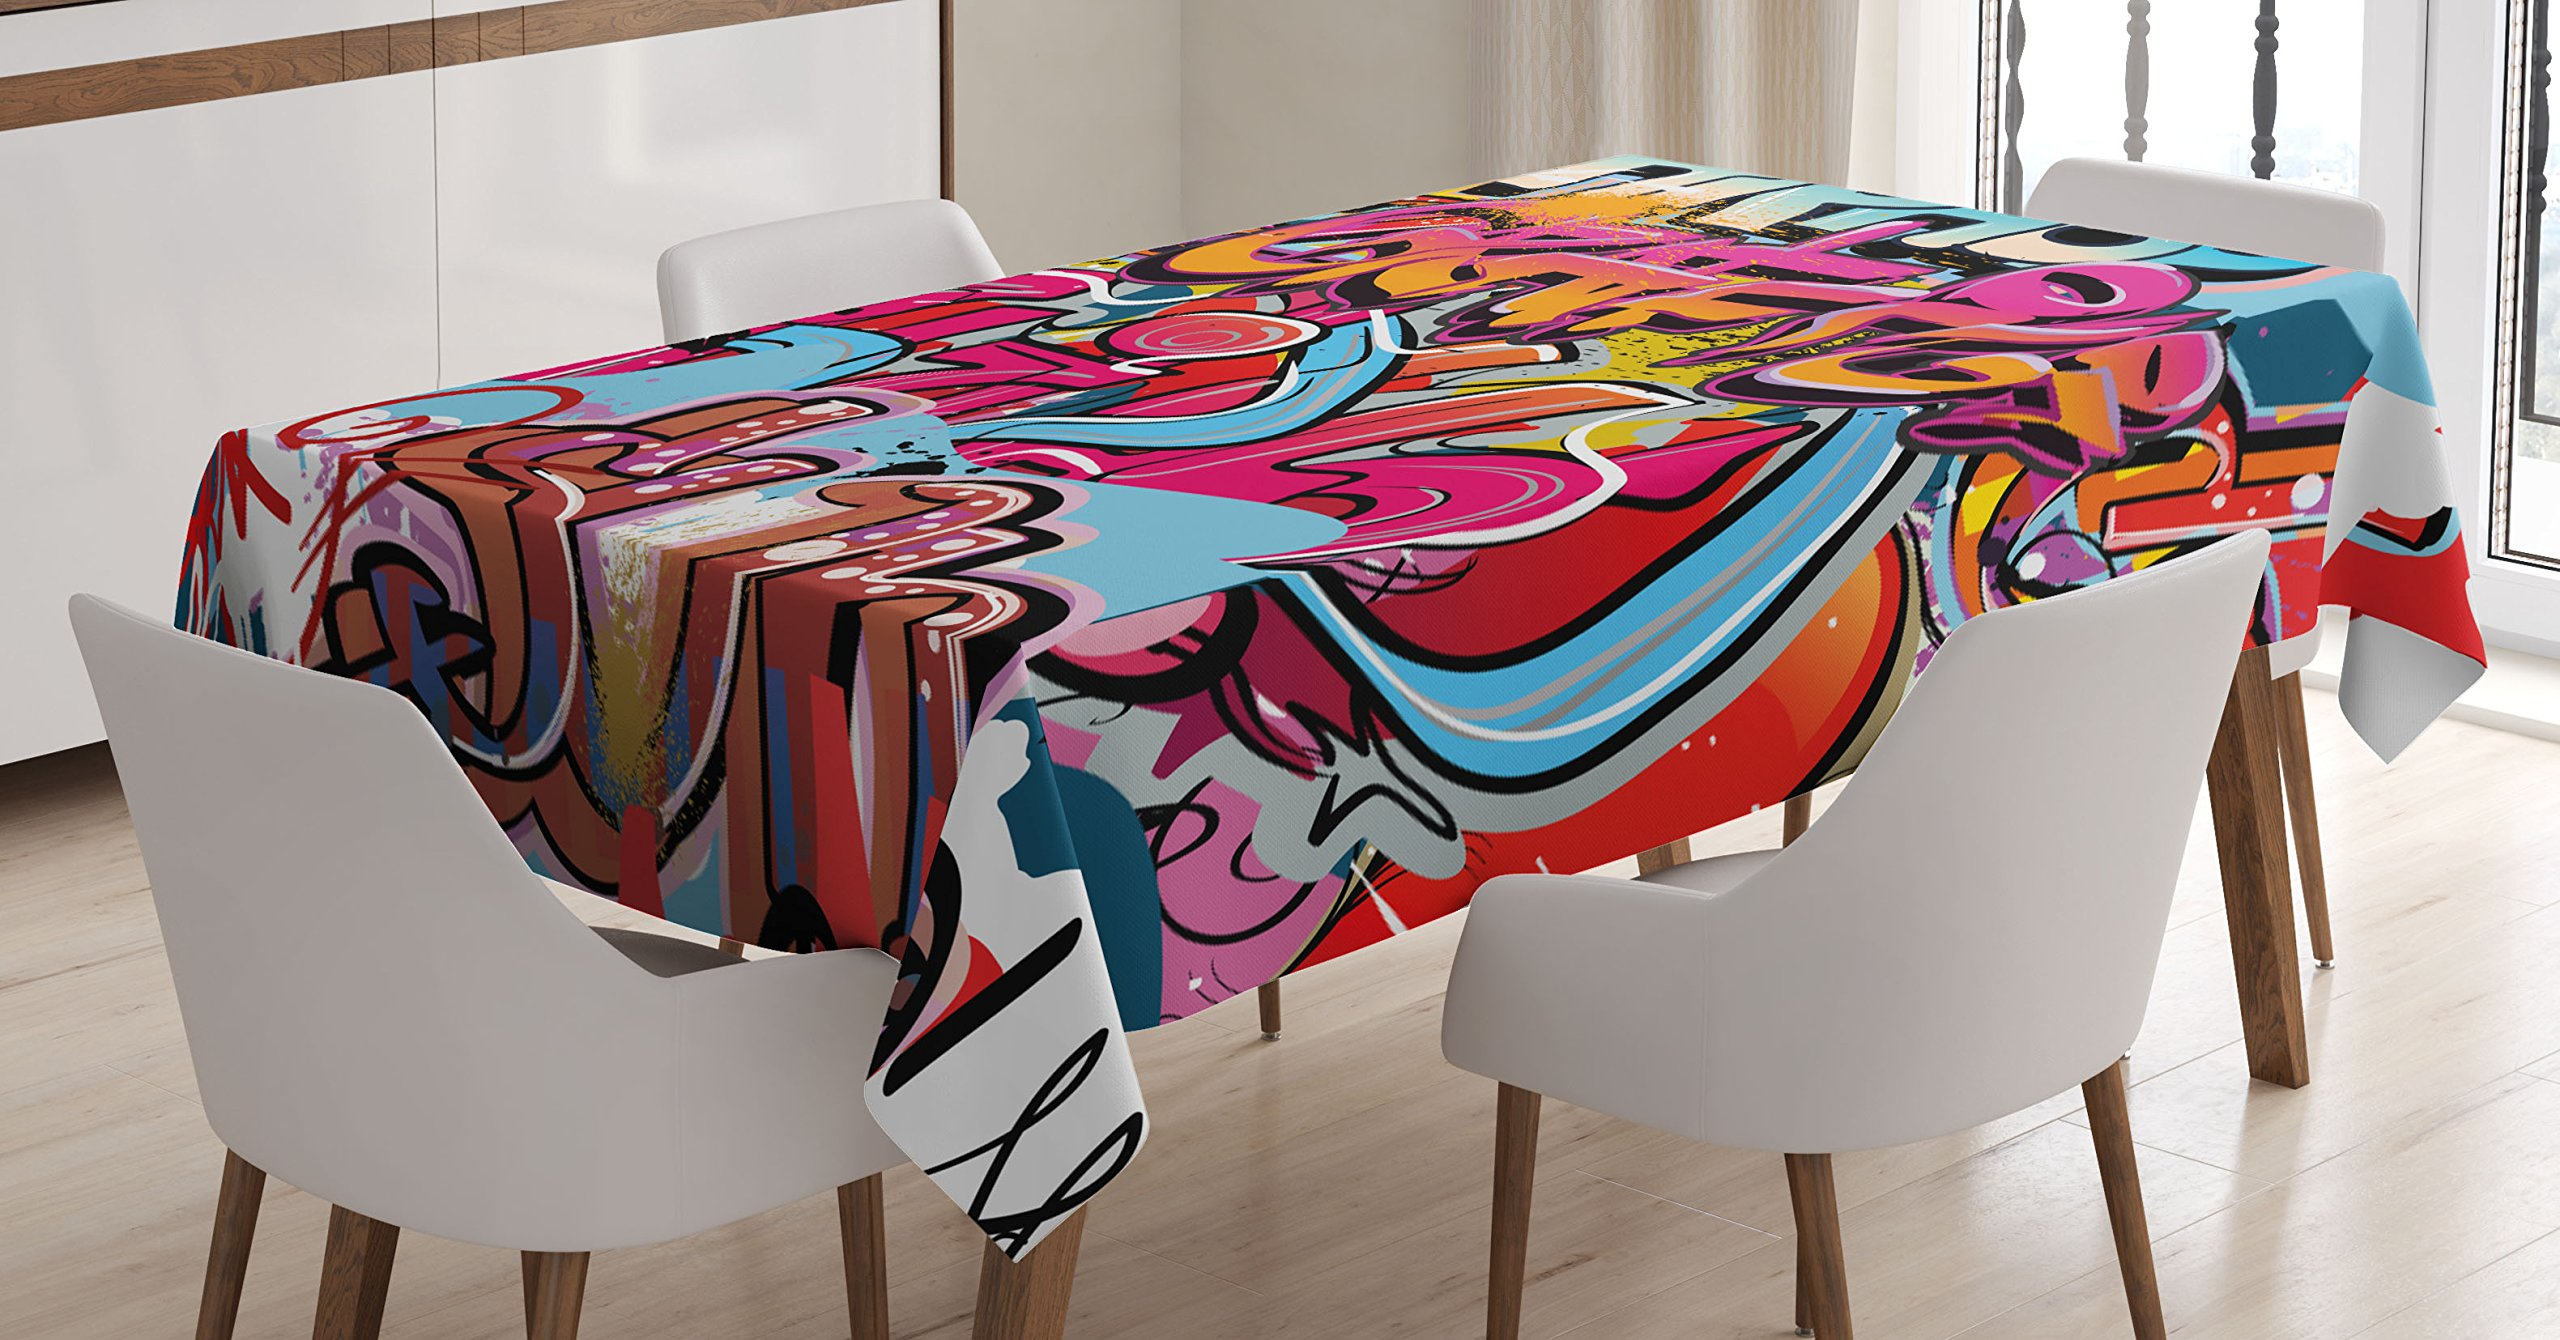 Ambesonne Graphic Decor Tablecloth, Hip Hop Street Culture Harlem New York Wall Graffiti Spray Artwork Image, Dining Room Kitchen Rectangular Table Cover, 60 W X 90 L inches, Multicolor